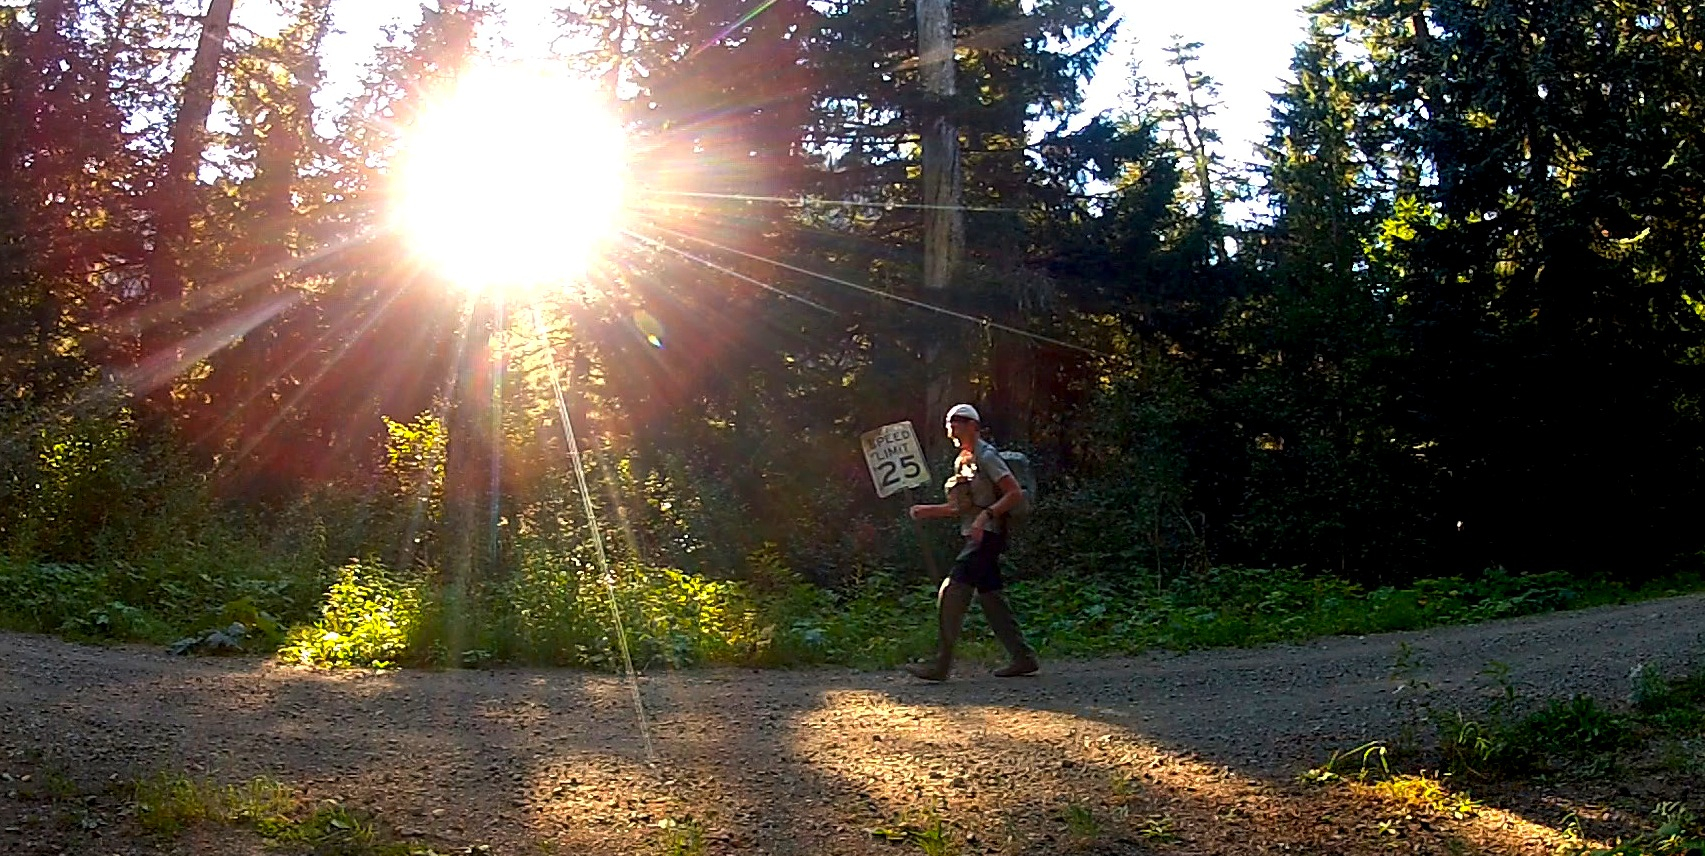 running the last leg on the West Side road for pickup after finishing filming the entire Wonderland Trail, October 04, 2012